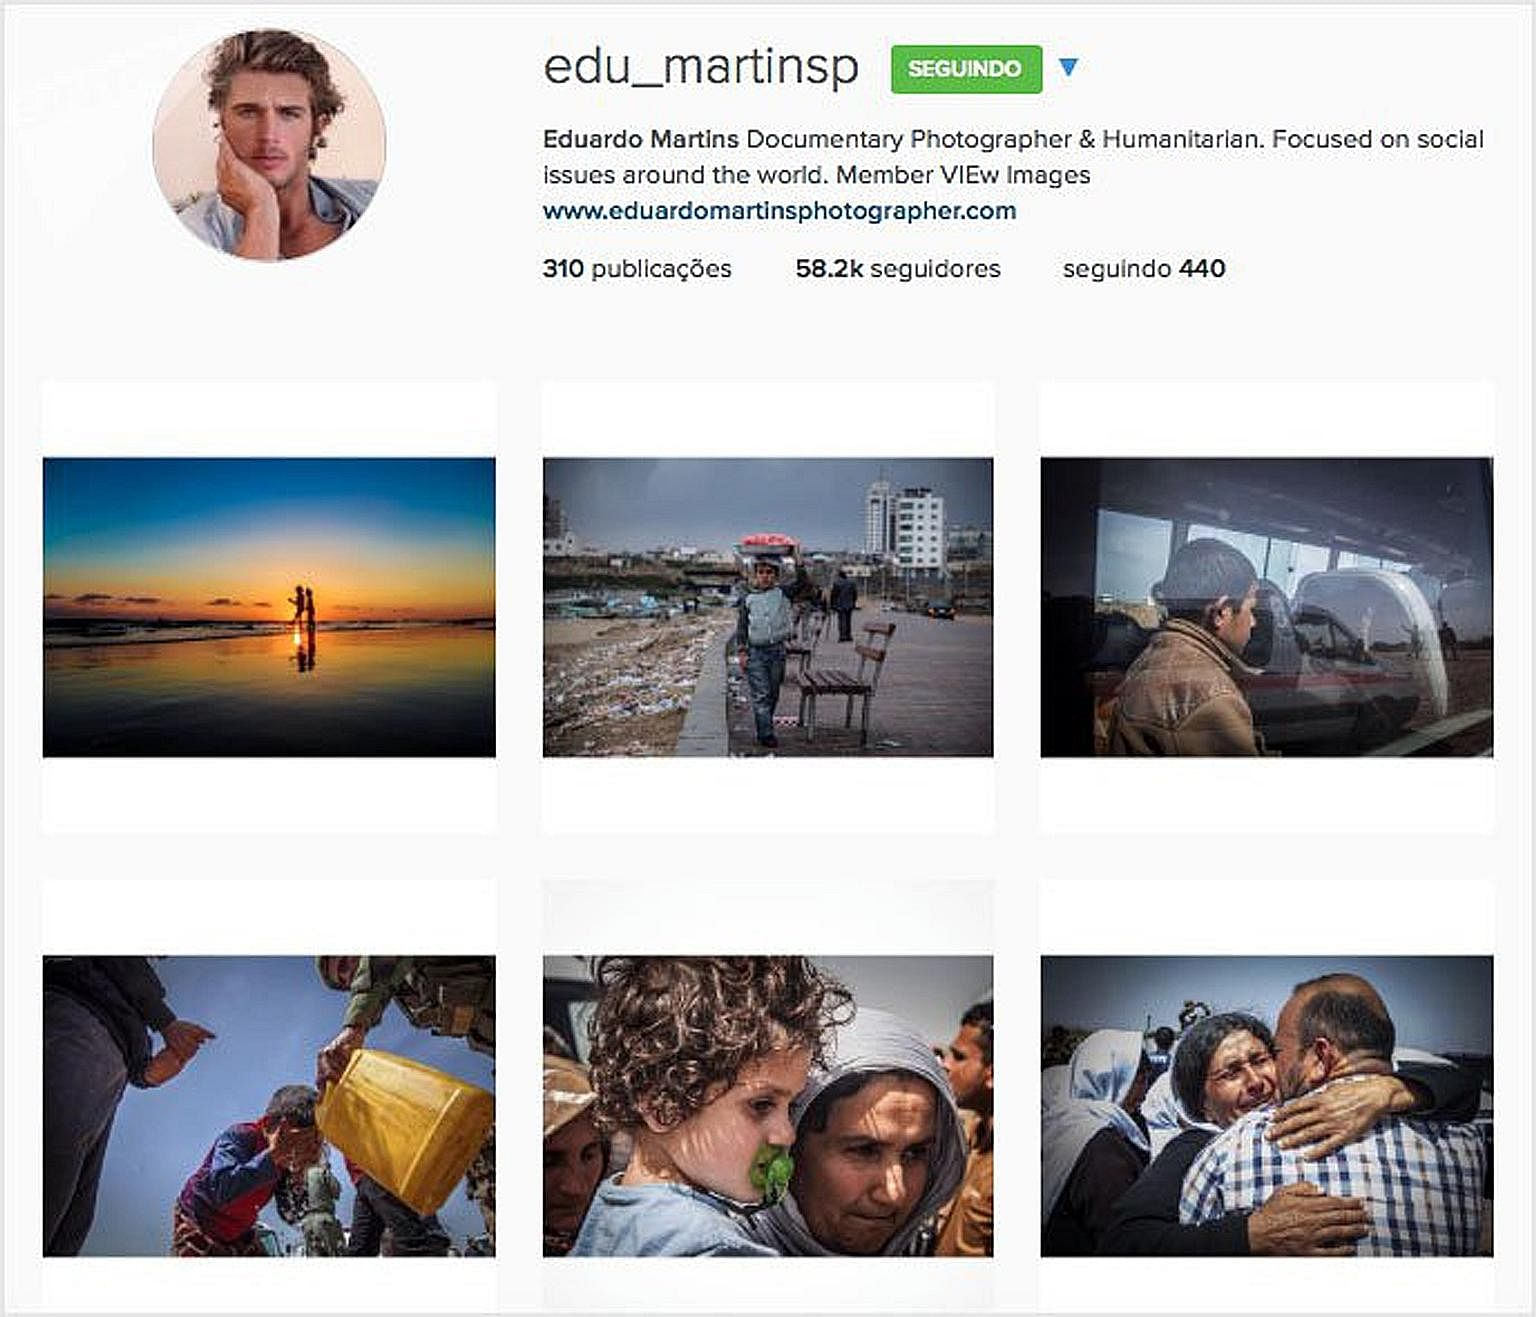 Fictitious Brazilian war photographer Eduardo Martins, who amassed over 120,000 Instagram followers, was created by a scammer who cobbled together the identities of two real people - British surfer Max Hepworth- Povey and US photographer Daniel C. Br